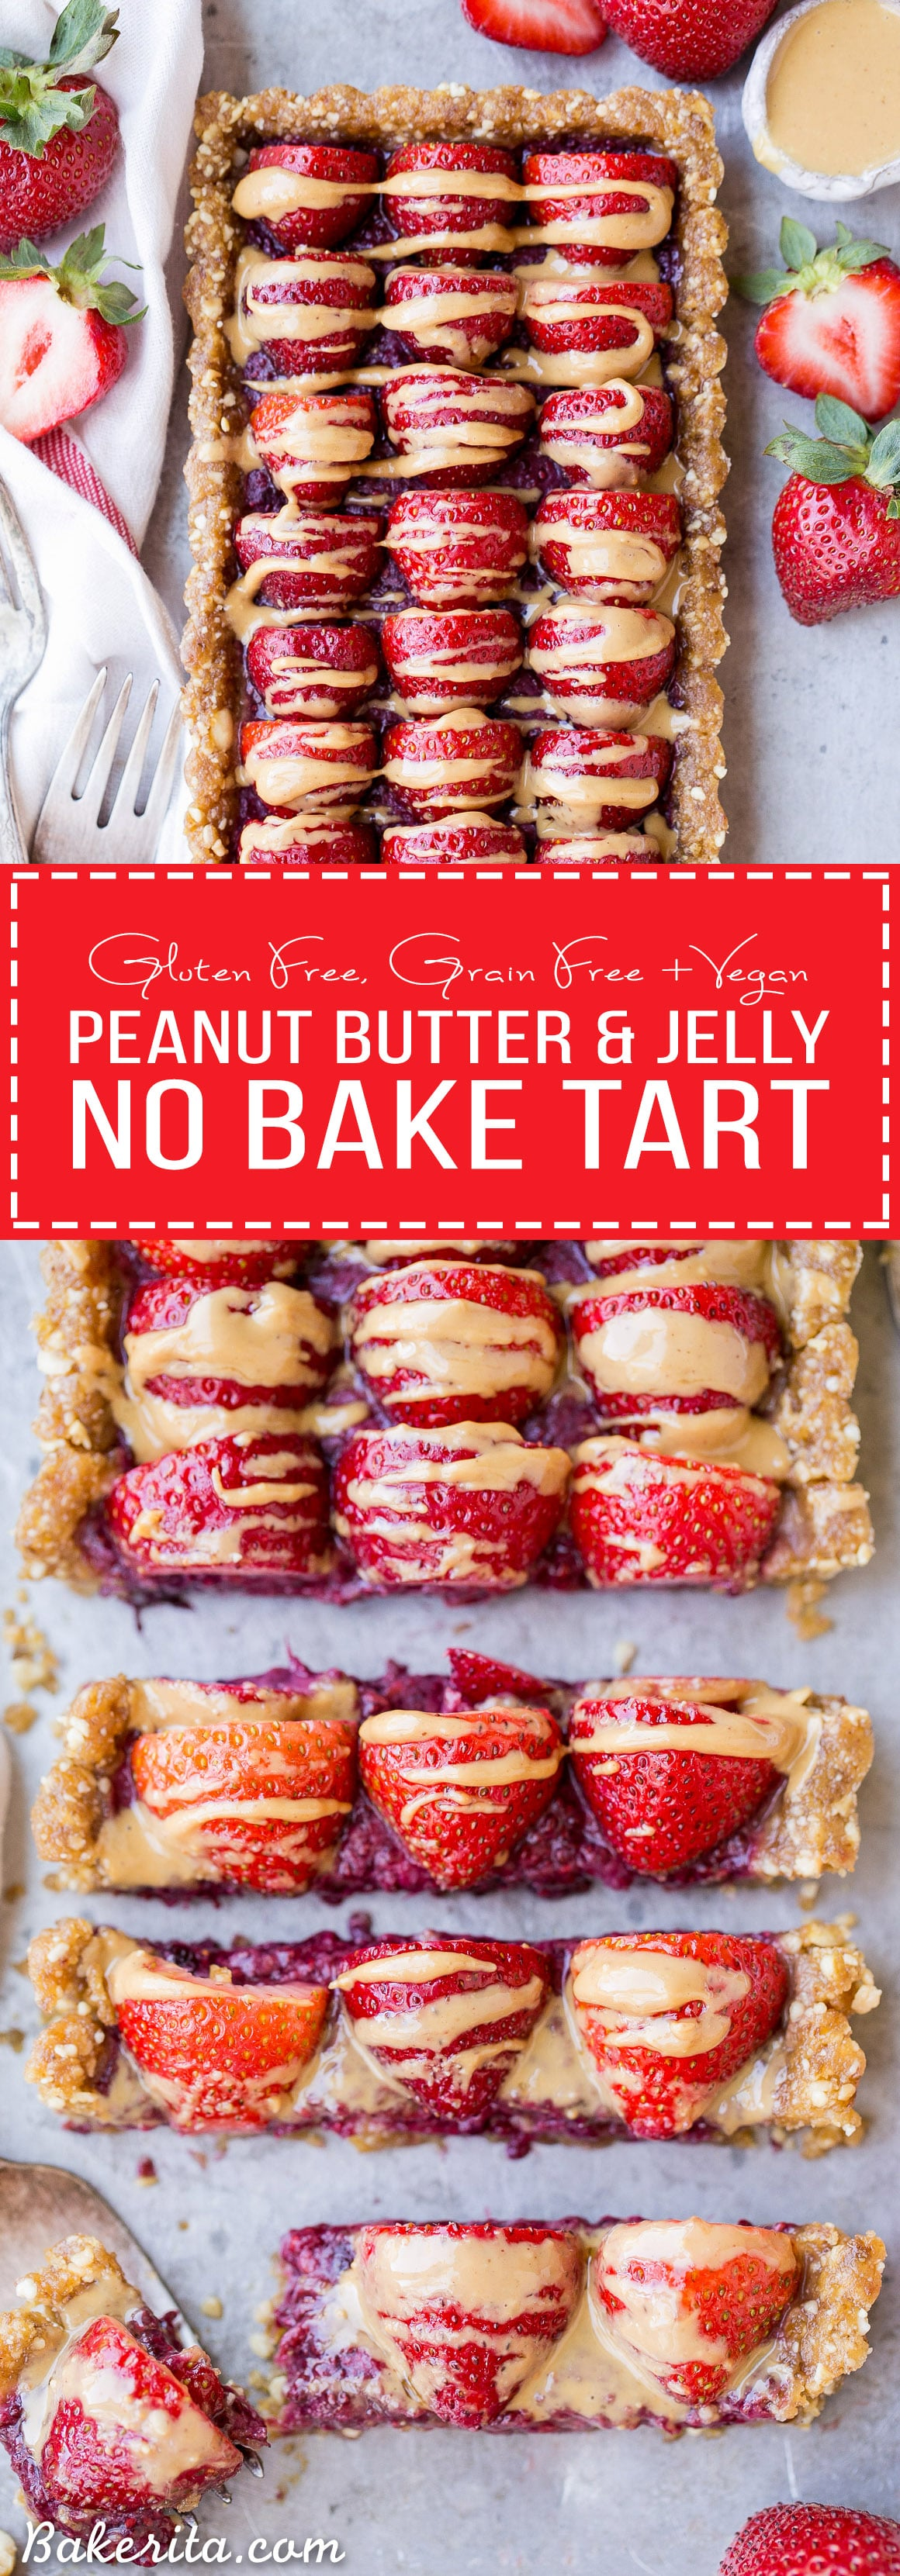 Skip the oven for this No Bake Peanut Butter & Jelly Tart - it's an easy and refreshing dessert made with just seven ingredients! It has a peanut date crust filled with berry chia jam. This rich and fruity tart is gluten-free, grain-free, refined sugar-free and vegan.